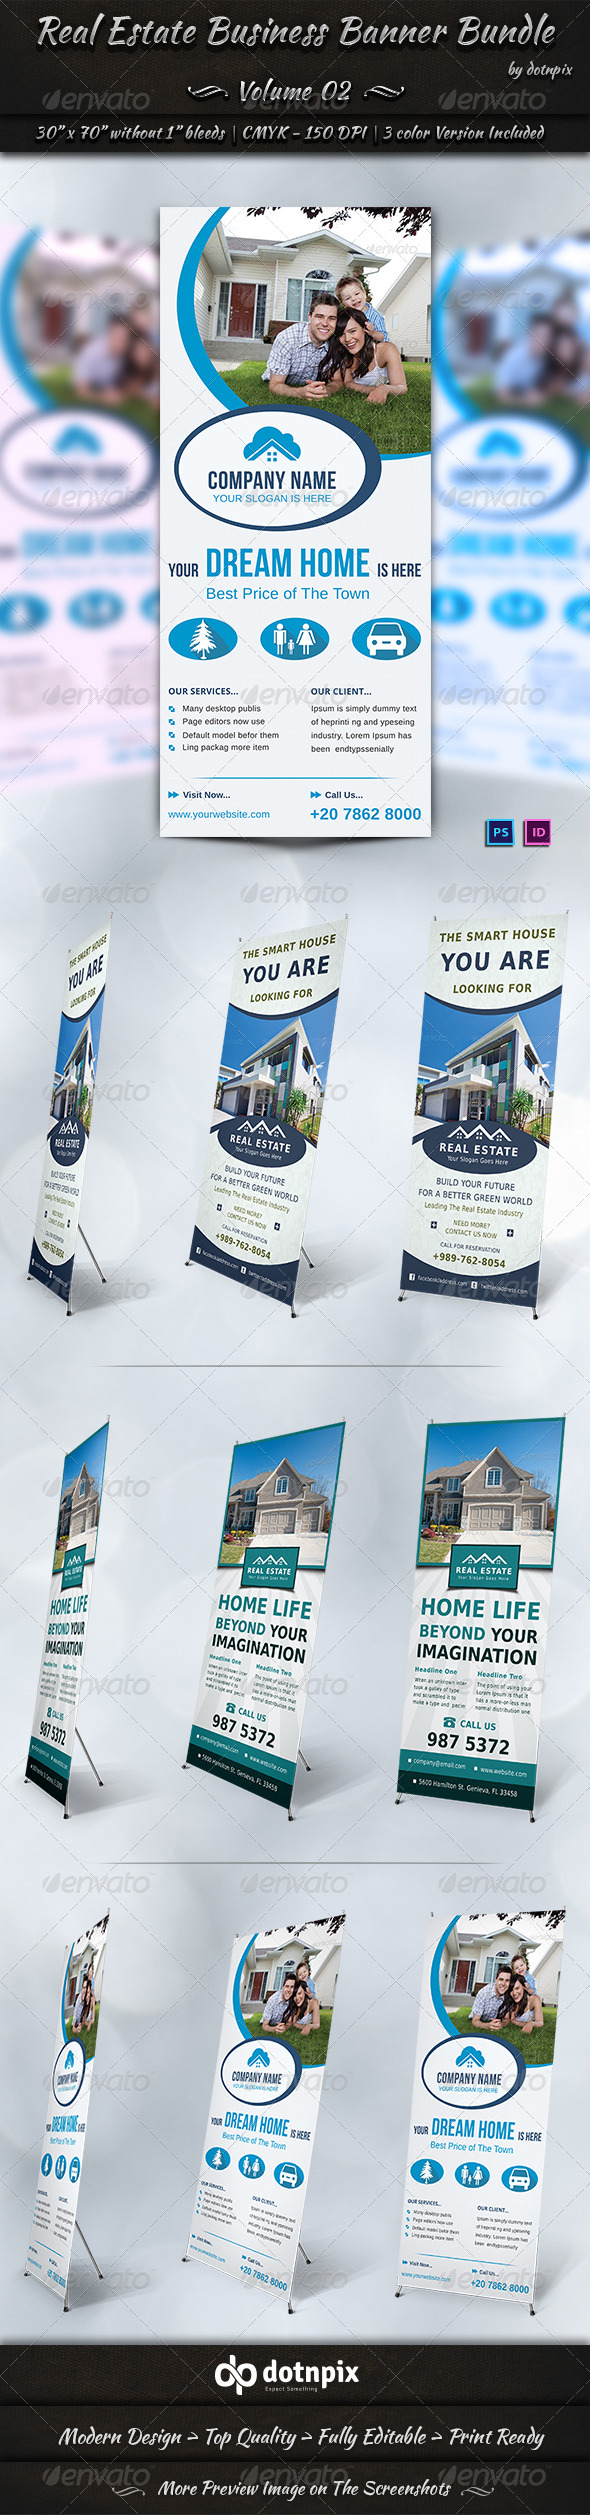 Real Estate Business Banner Bundle Volume 2